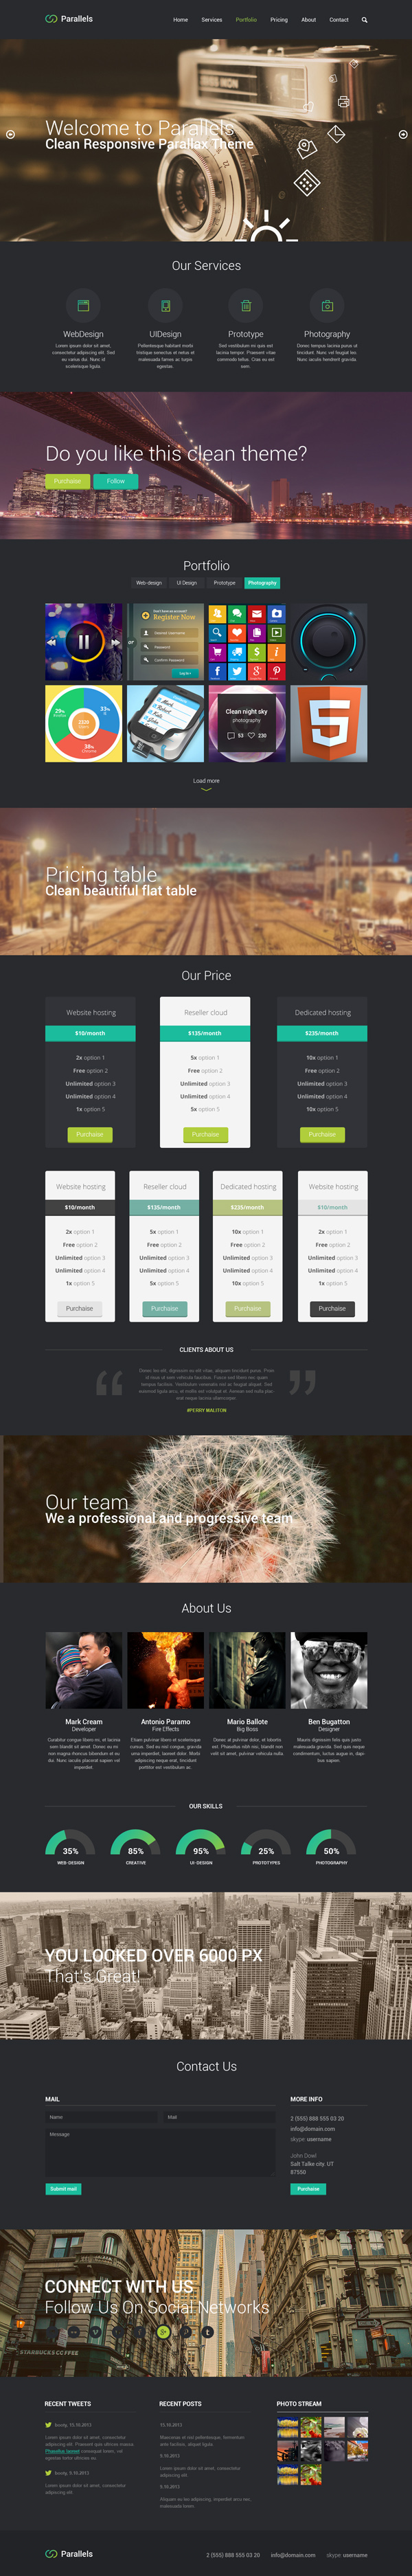 Parallels PSD Responsive Template